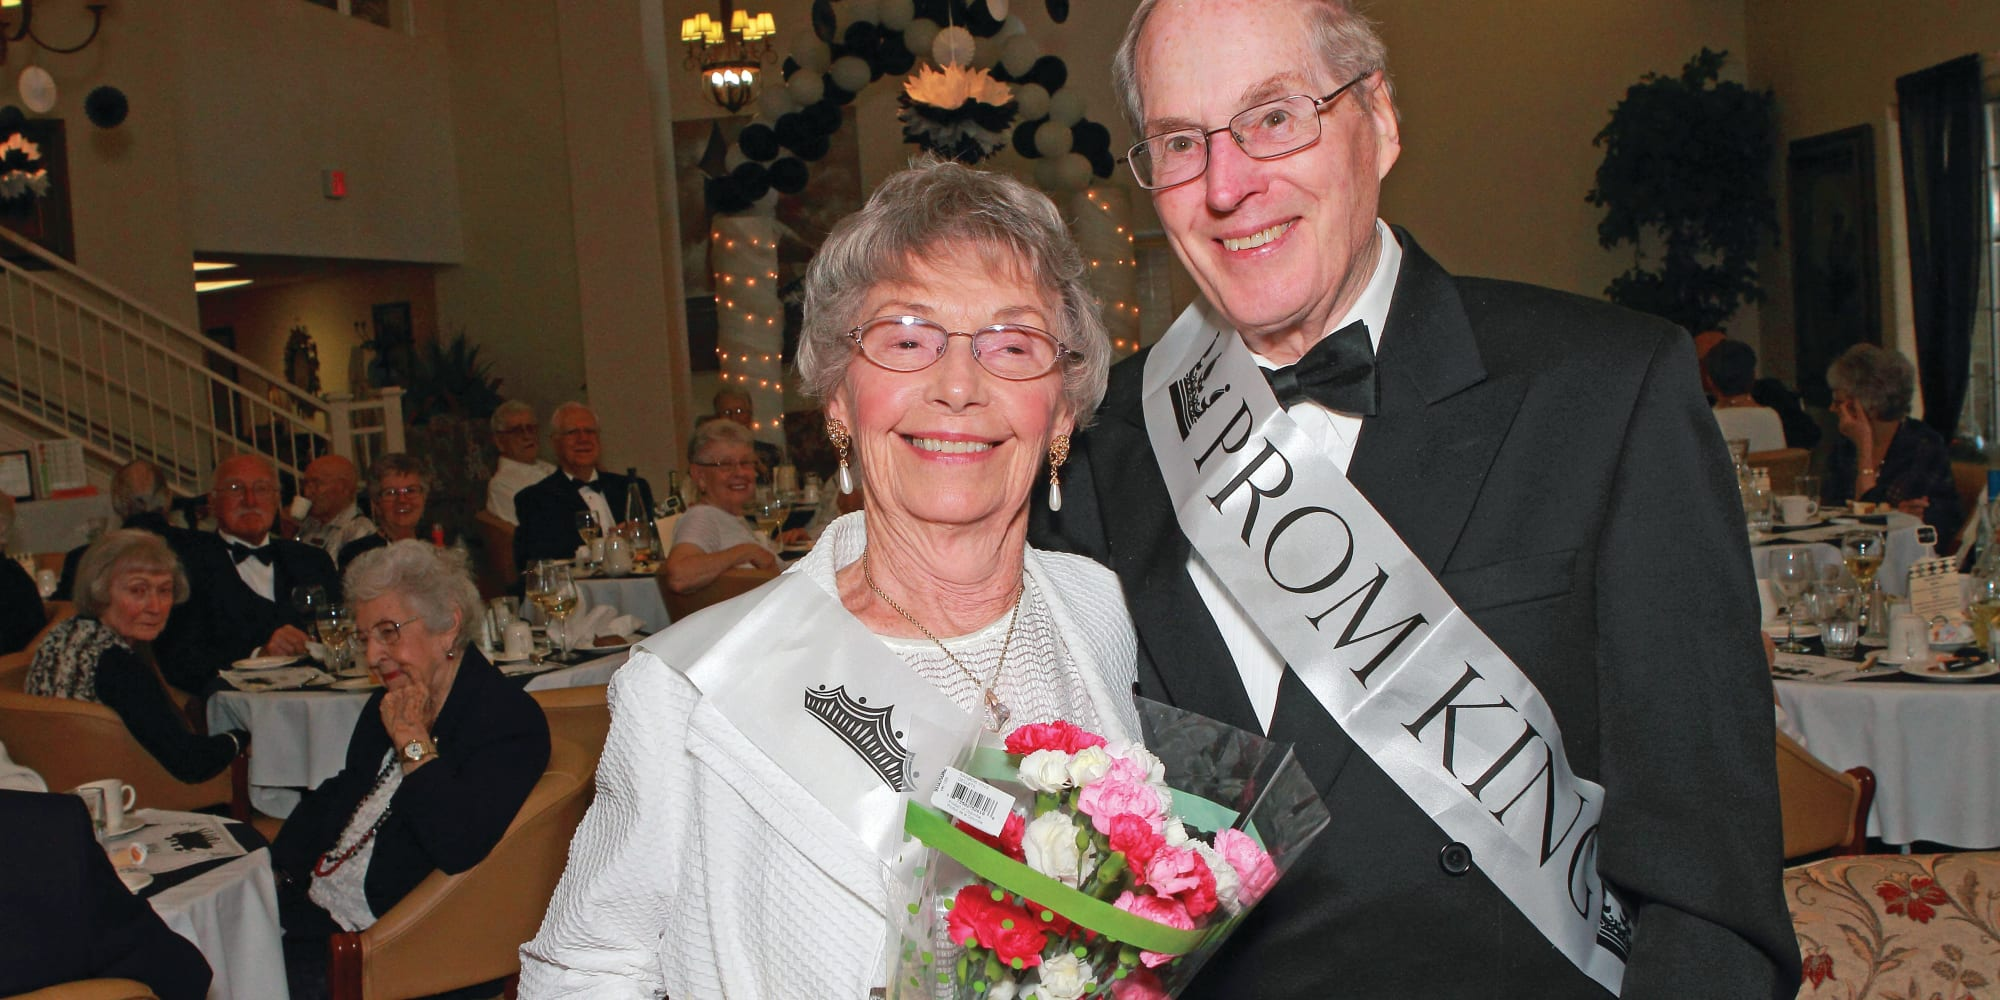 Prom king and queen at The Highlands Gracious Retirement Living in Westborough, Massachusetts